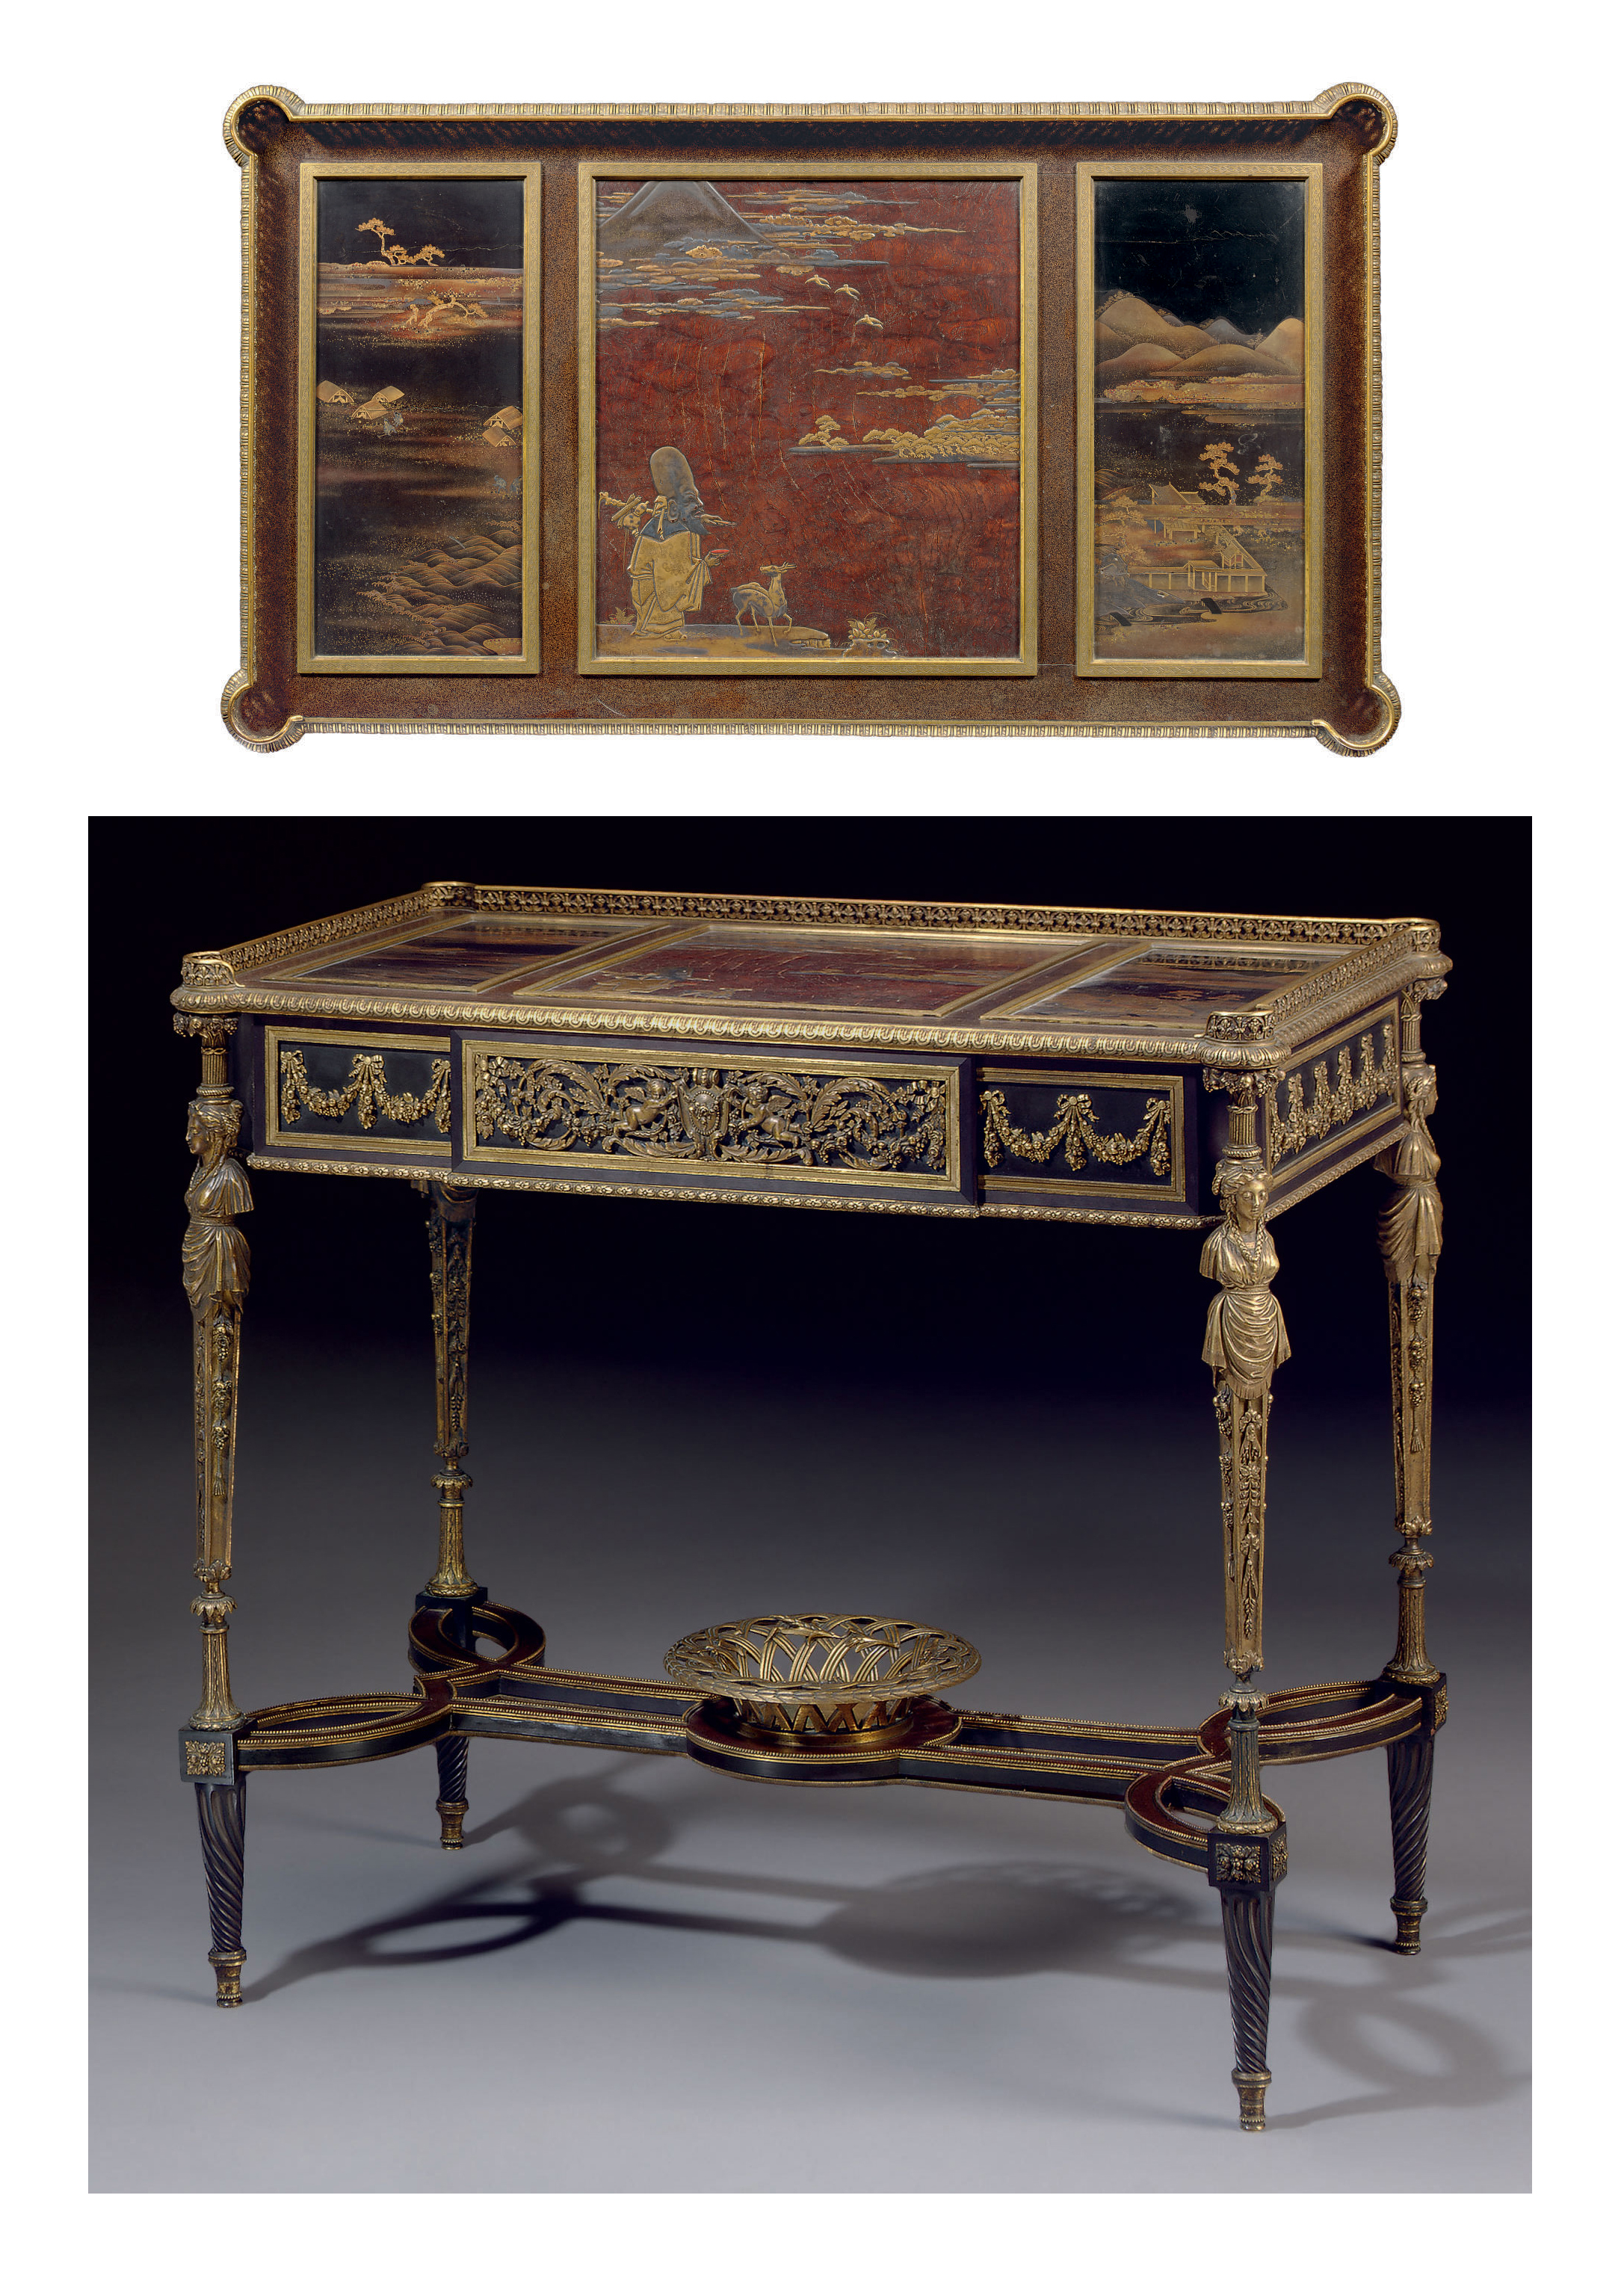 A FRENCH ORMOLU AND JAPANESE LACQUER-MOUNTED AVENTURINE, EBONY AND EBONIZED TABLE DE DAME